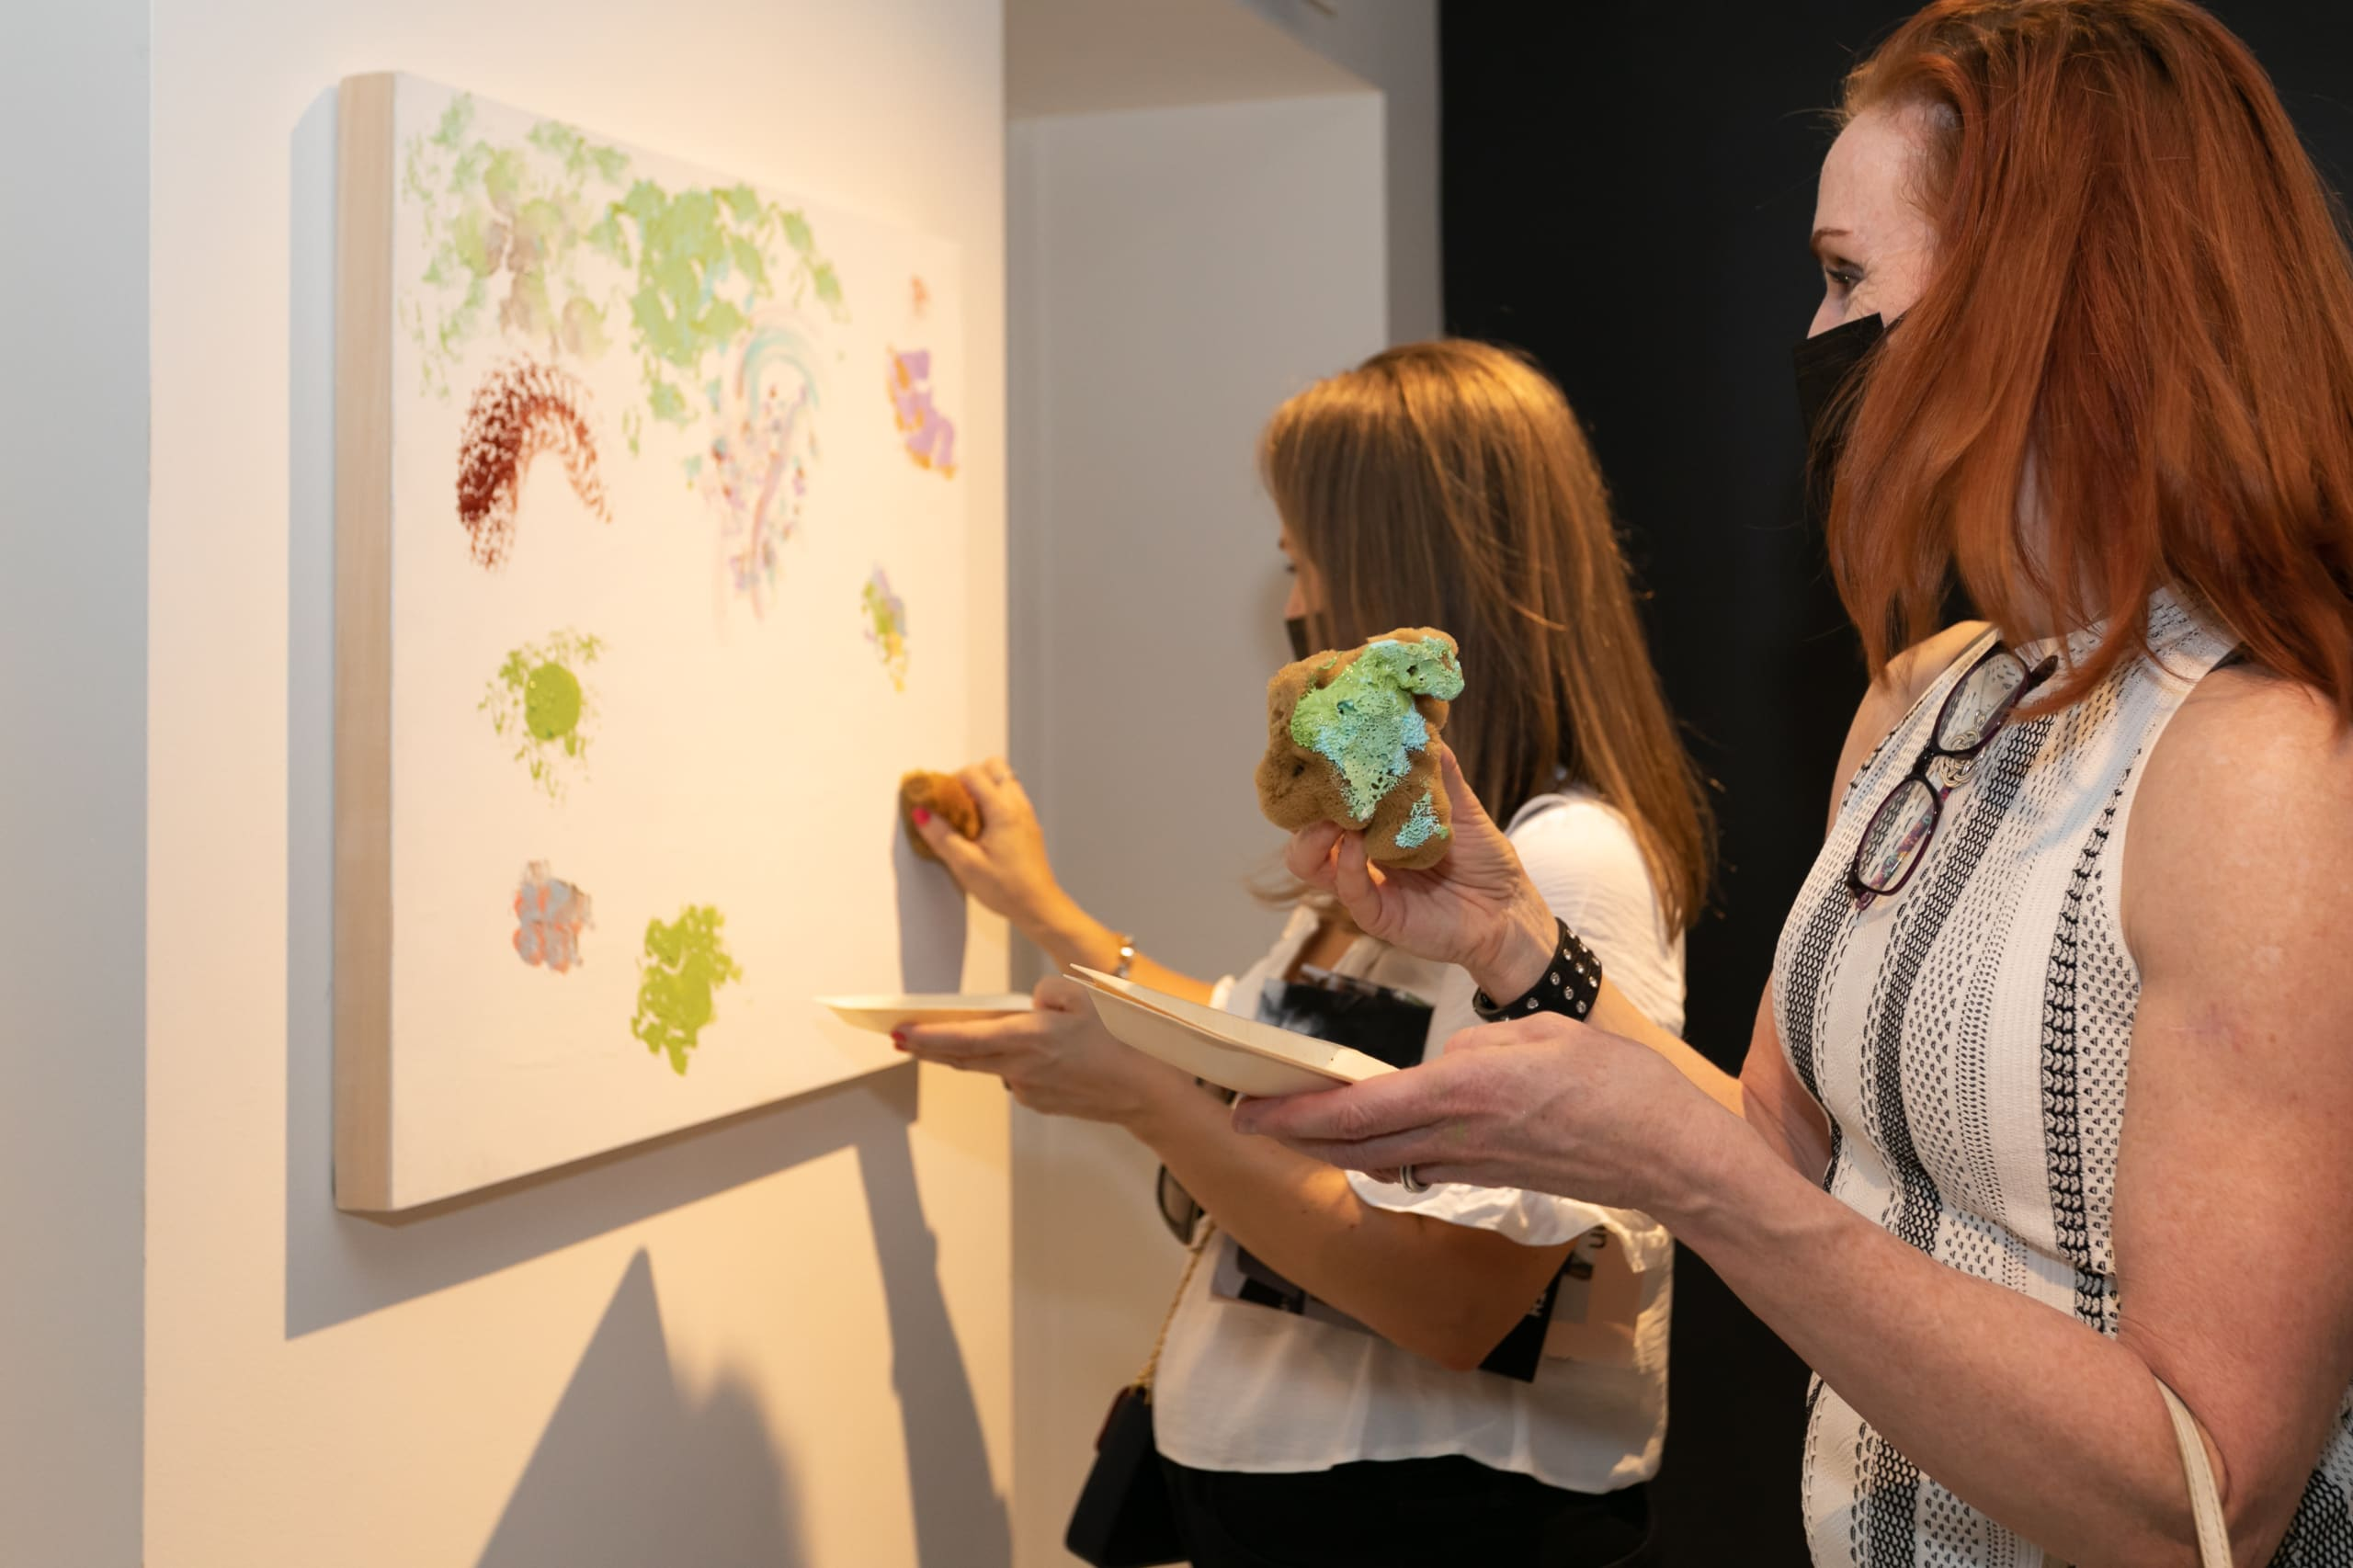 attendees at the rndd gallery walk fall 2021 creating a coral sponge painting in the eggersmann chicago showroom